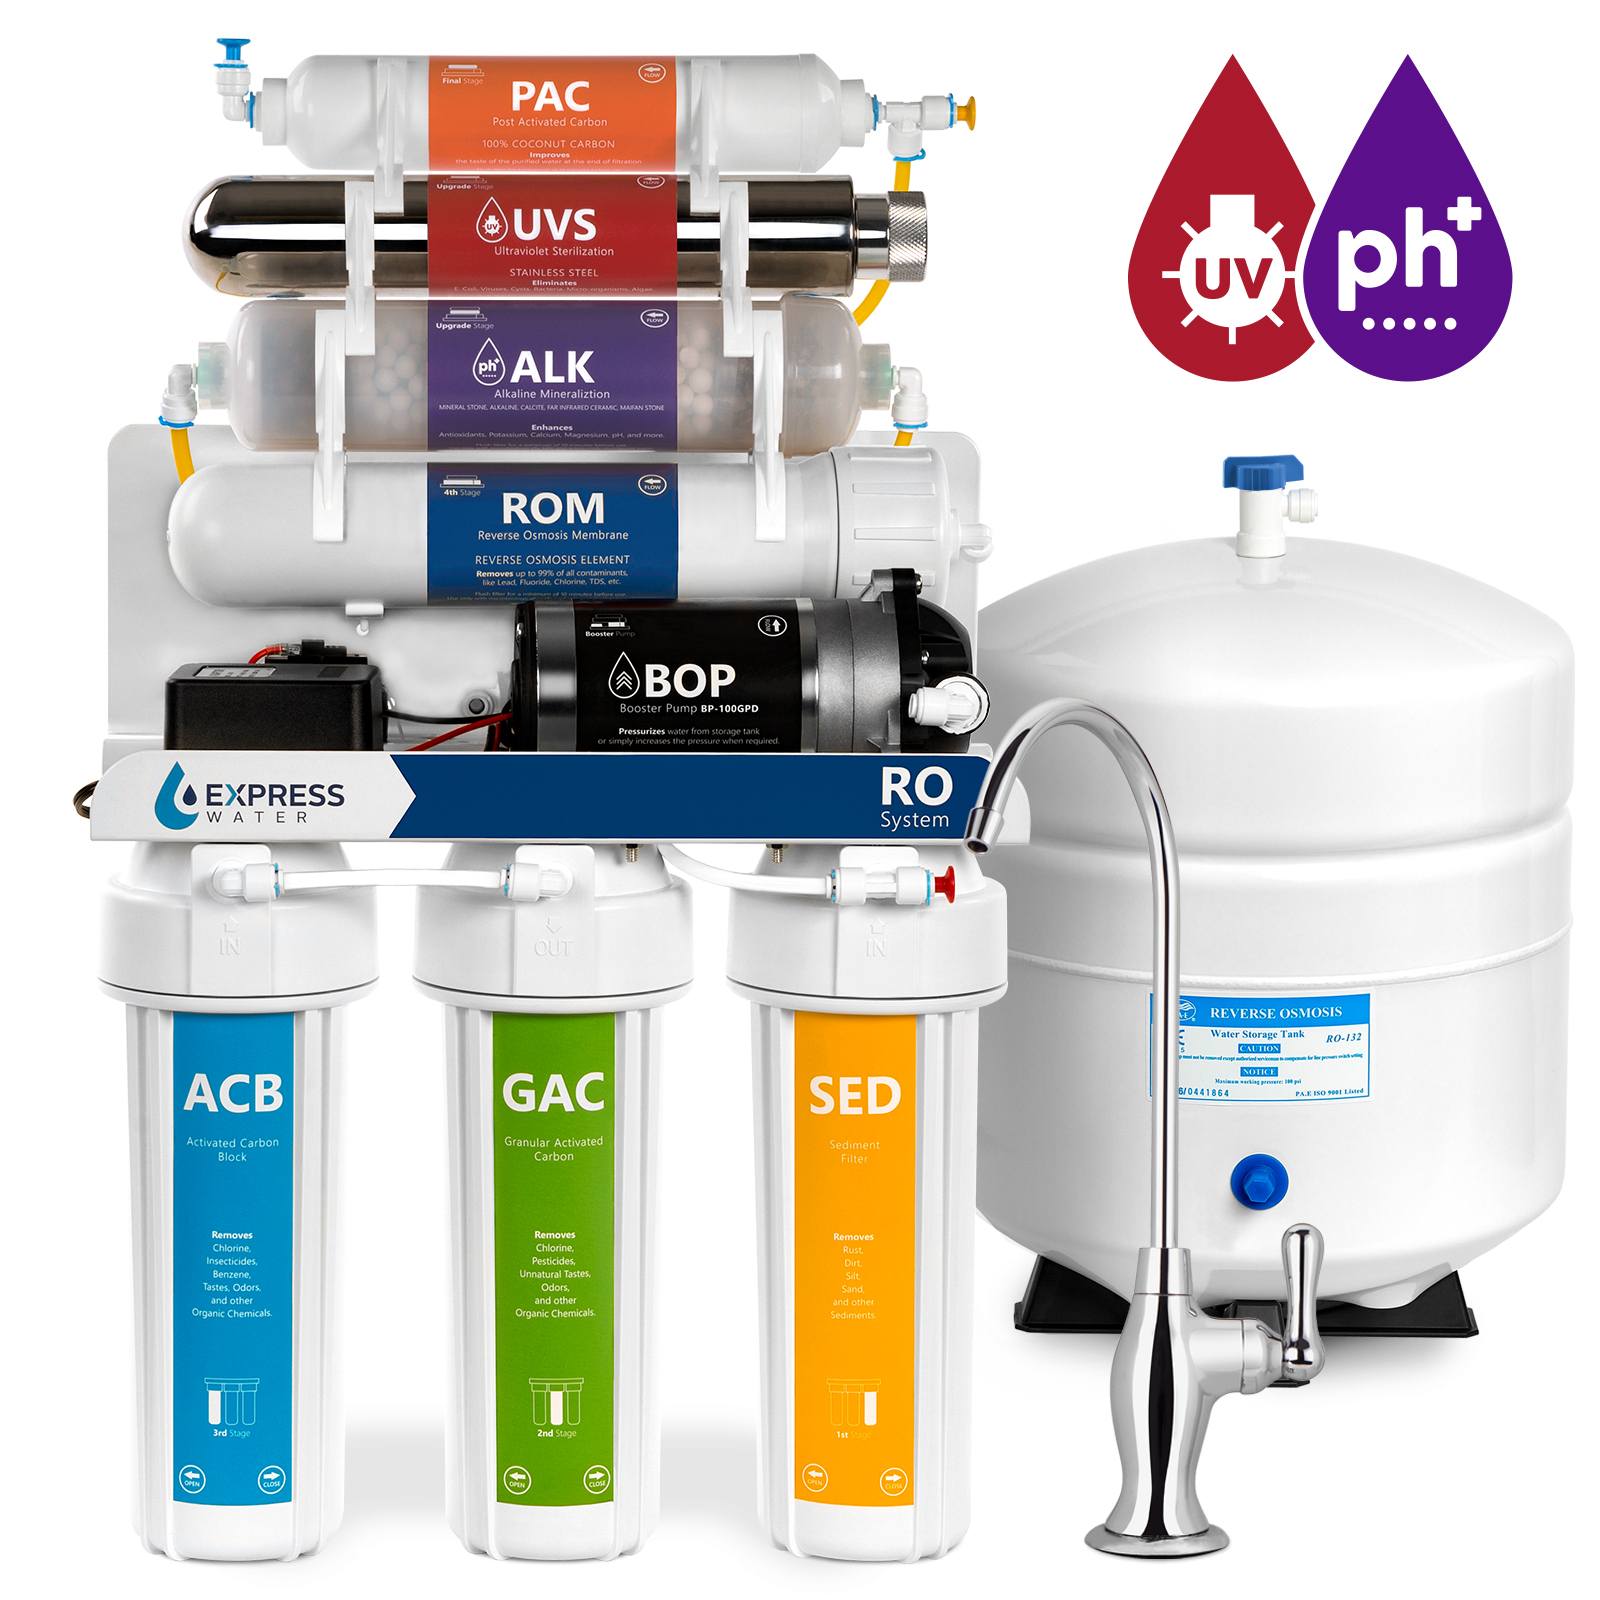 Express Water 11-Stage Reverse Osmosis Alkaline Remineralization + UV Ultraviolet Filter System with Booster Pump 100-GPD (Deluxe)